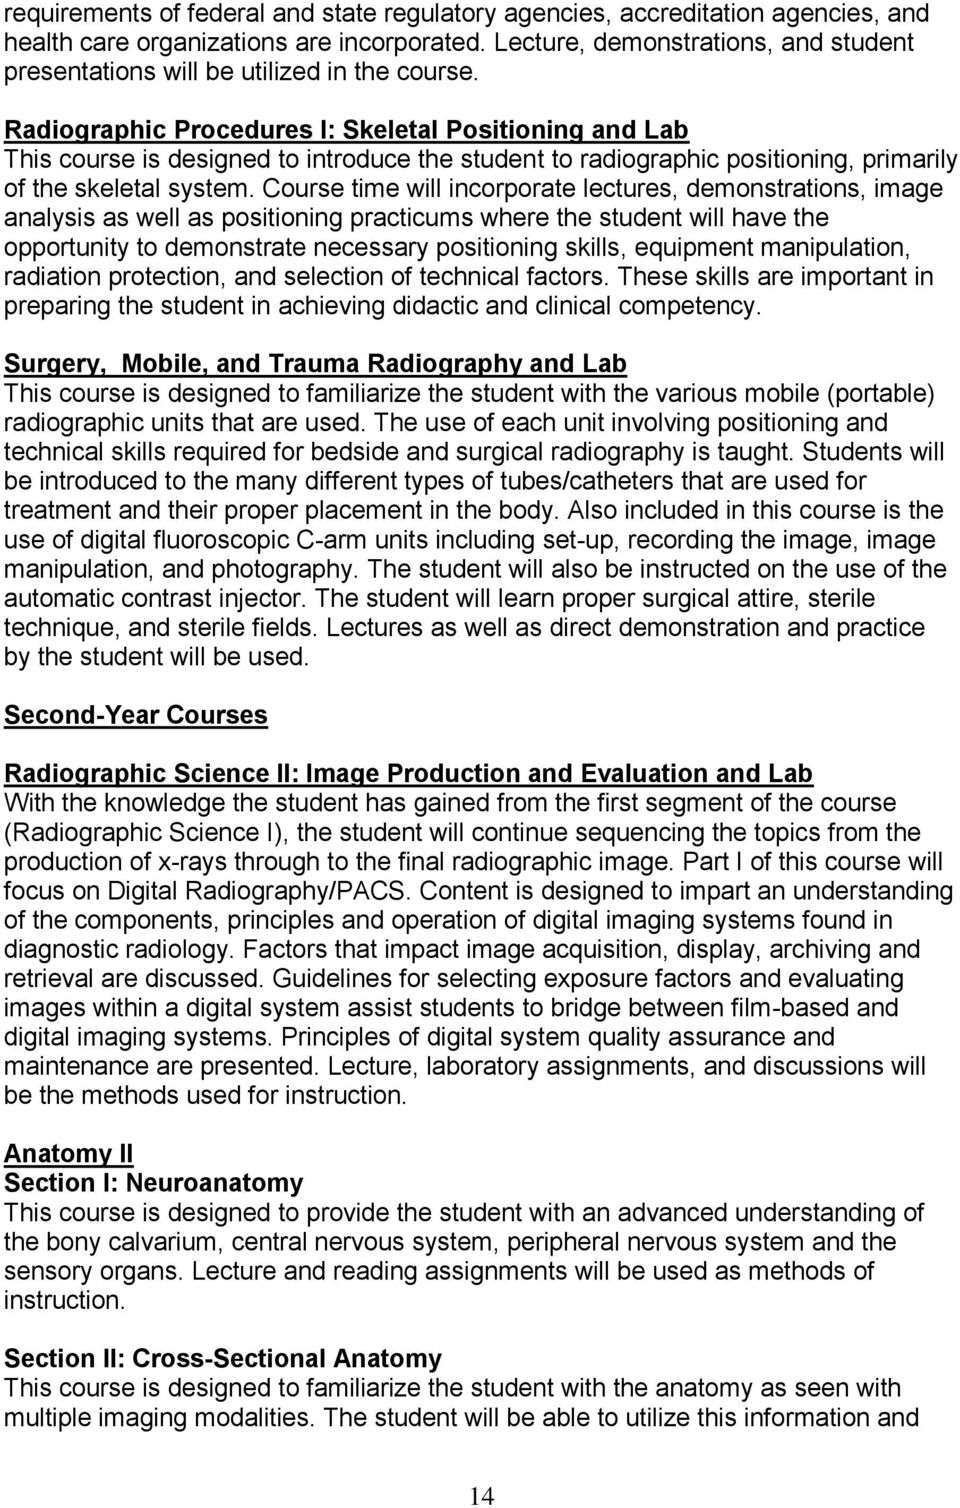 Radiographic Procedures I: Skeletal Positioning and Lab This course is designed to introduce the student to radiographic positioning, primarily of the skeletal system.